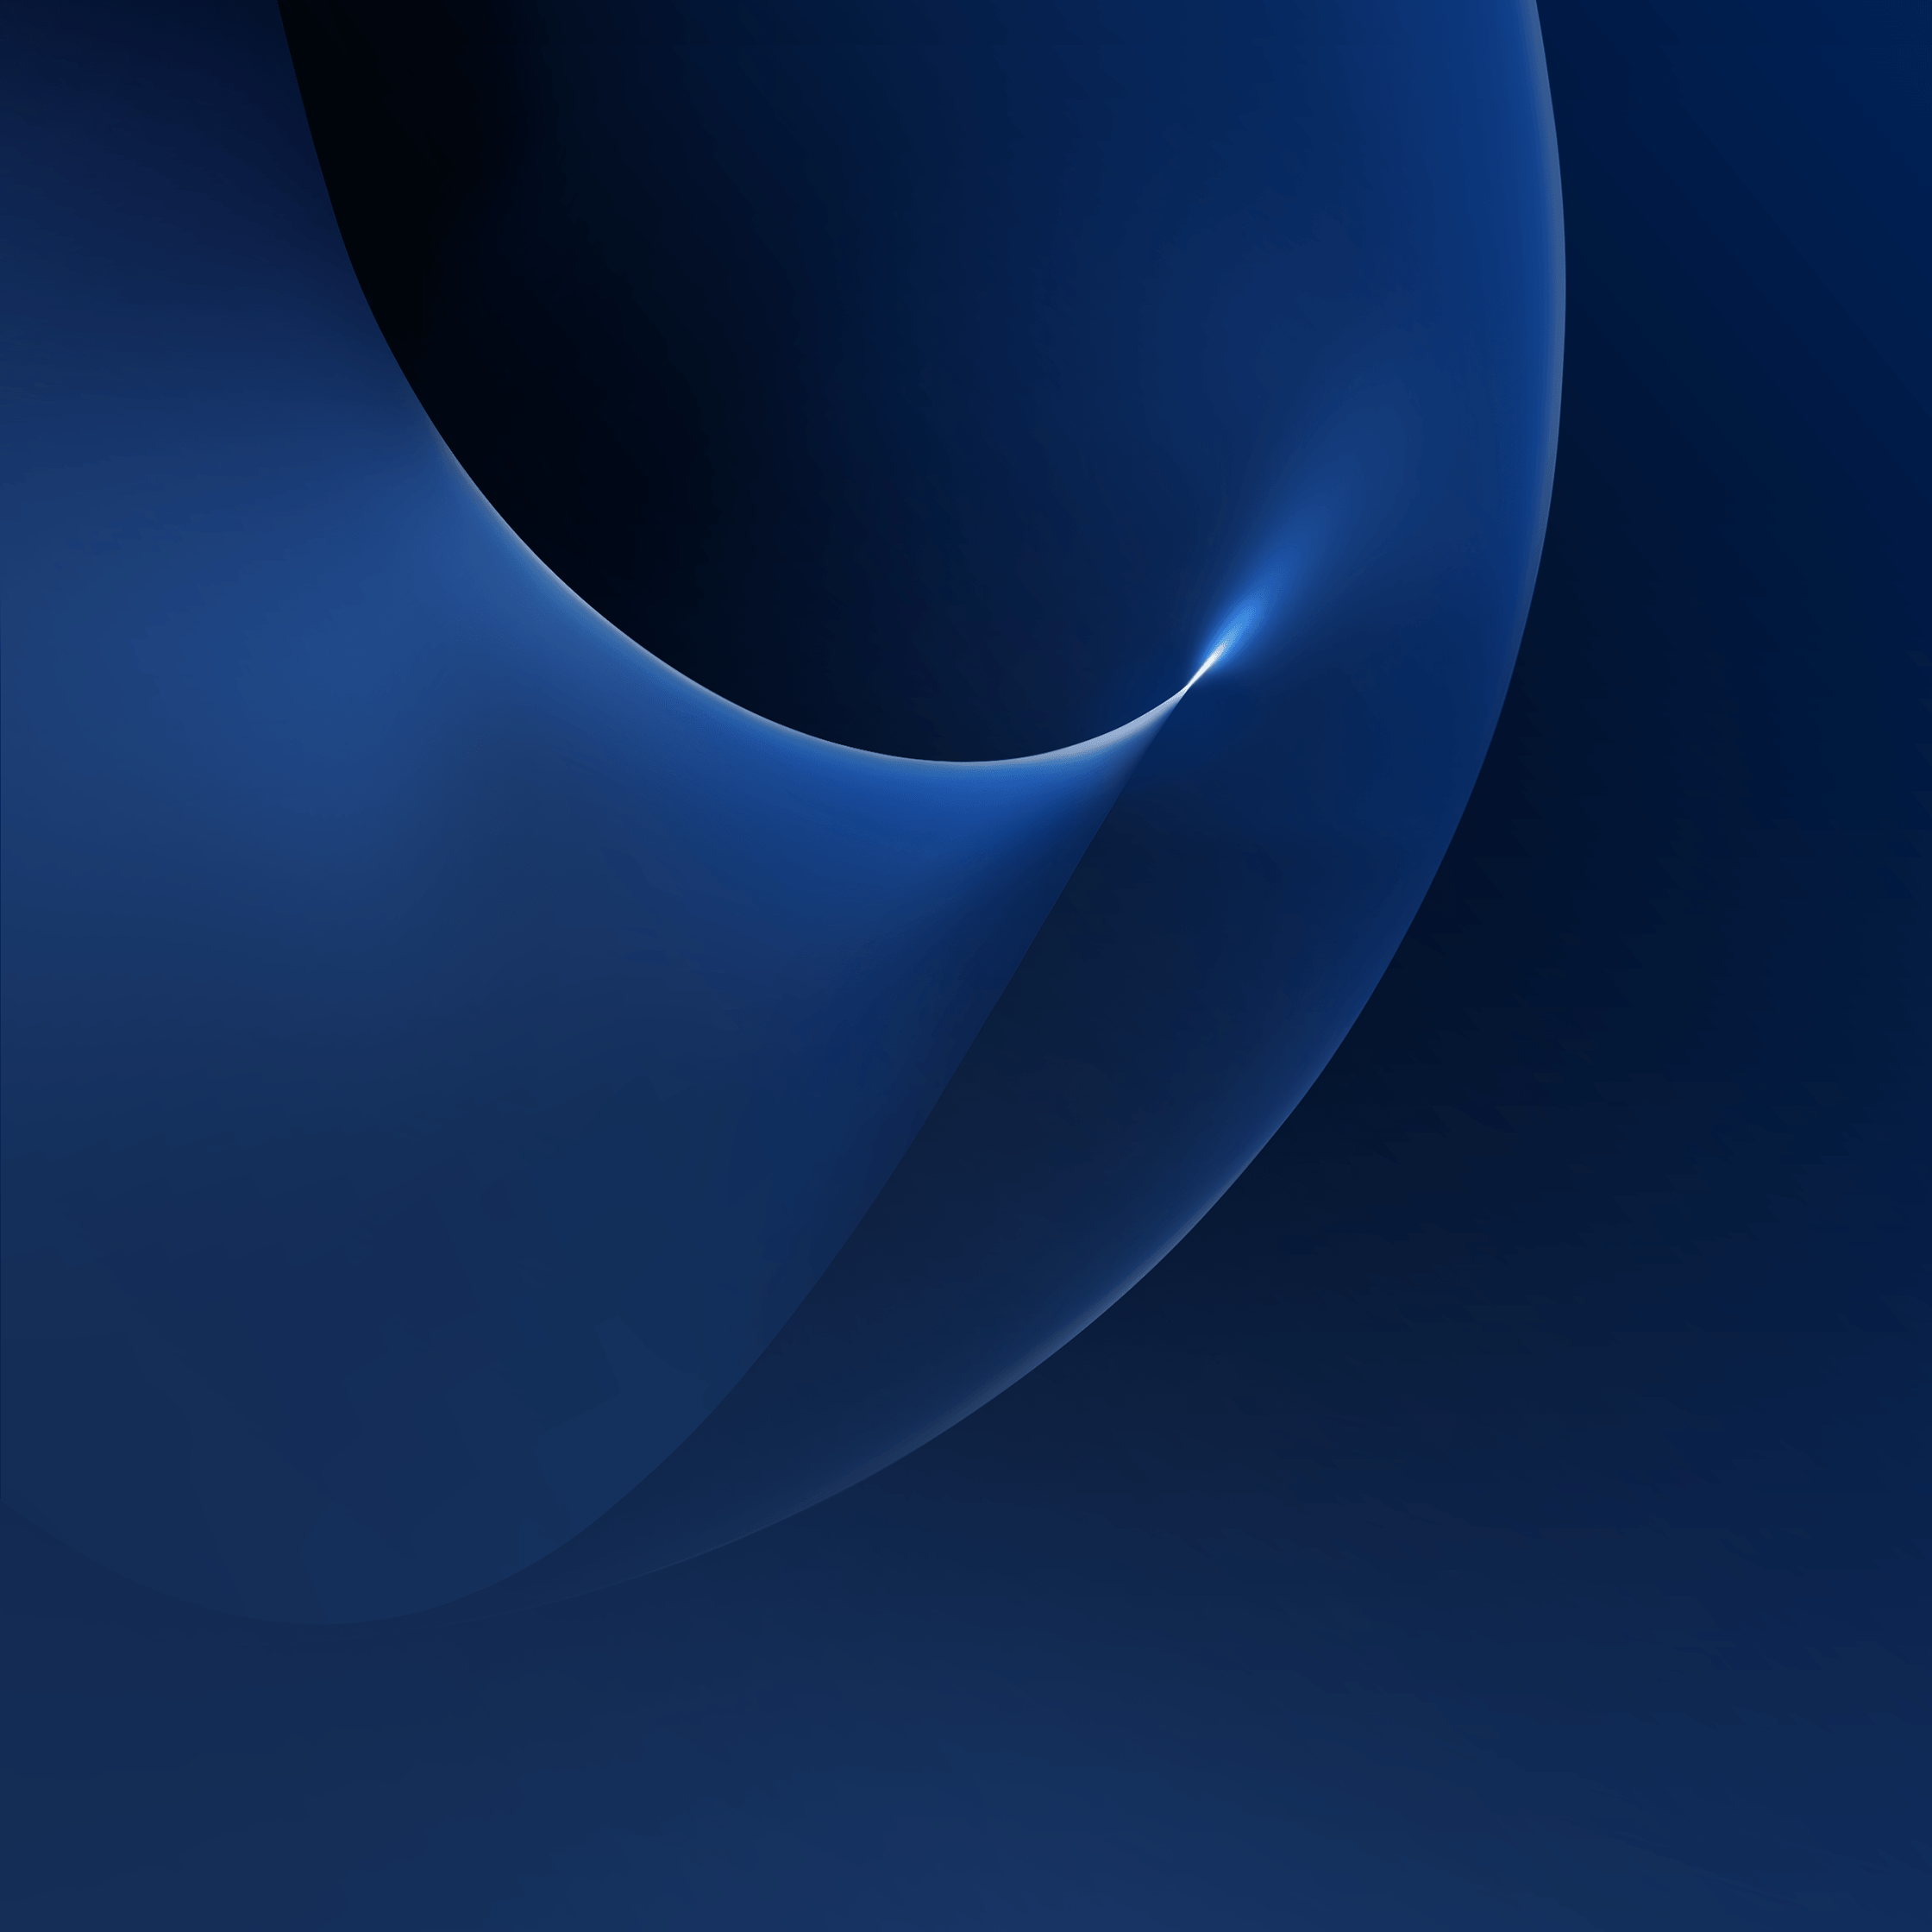 Samsung S7 Edge Wallpapers   Top Samsung S7 Edge Backgrounds 2240x2240